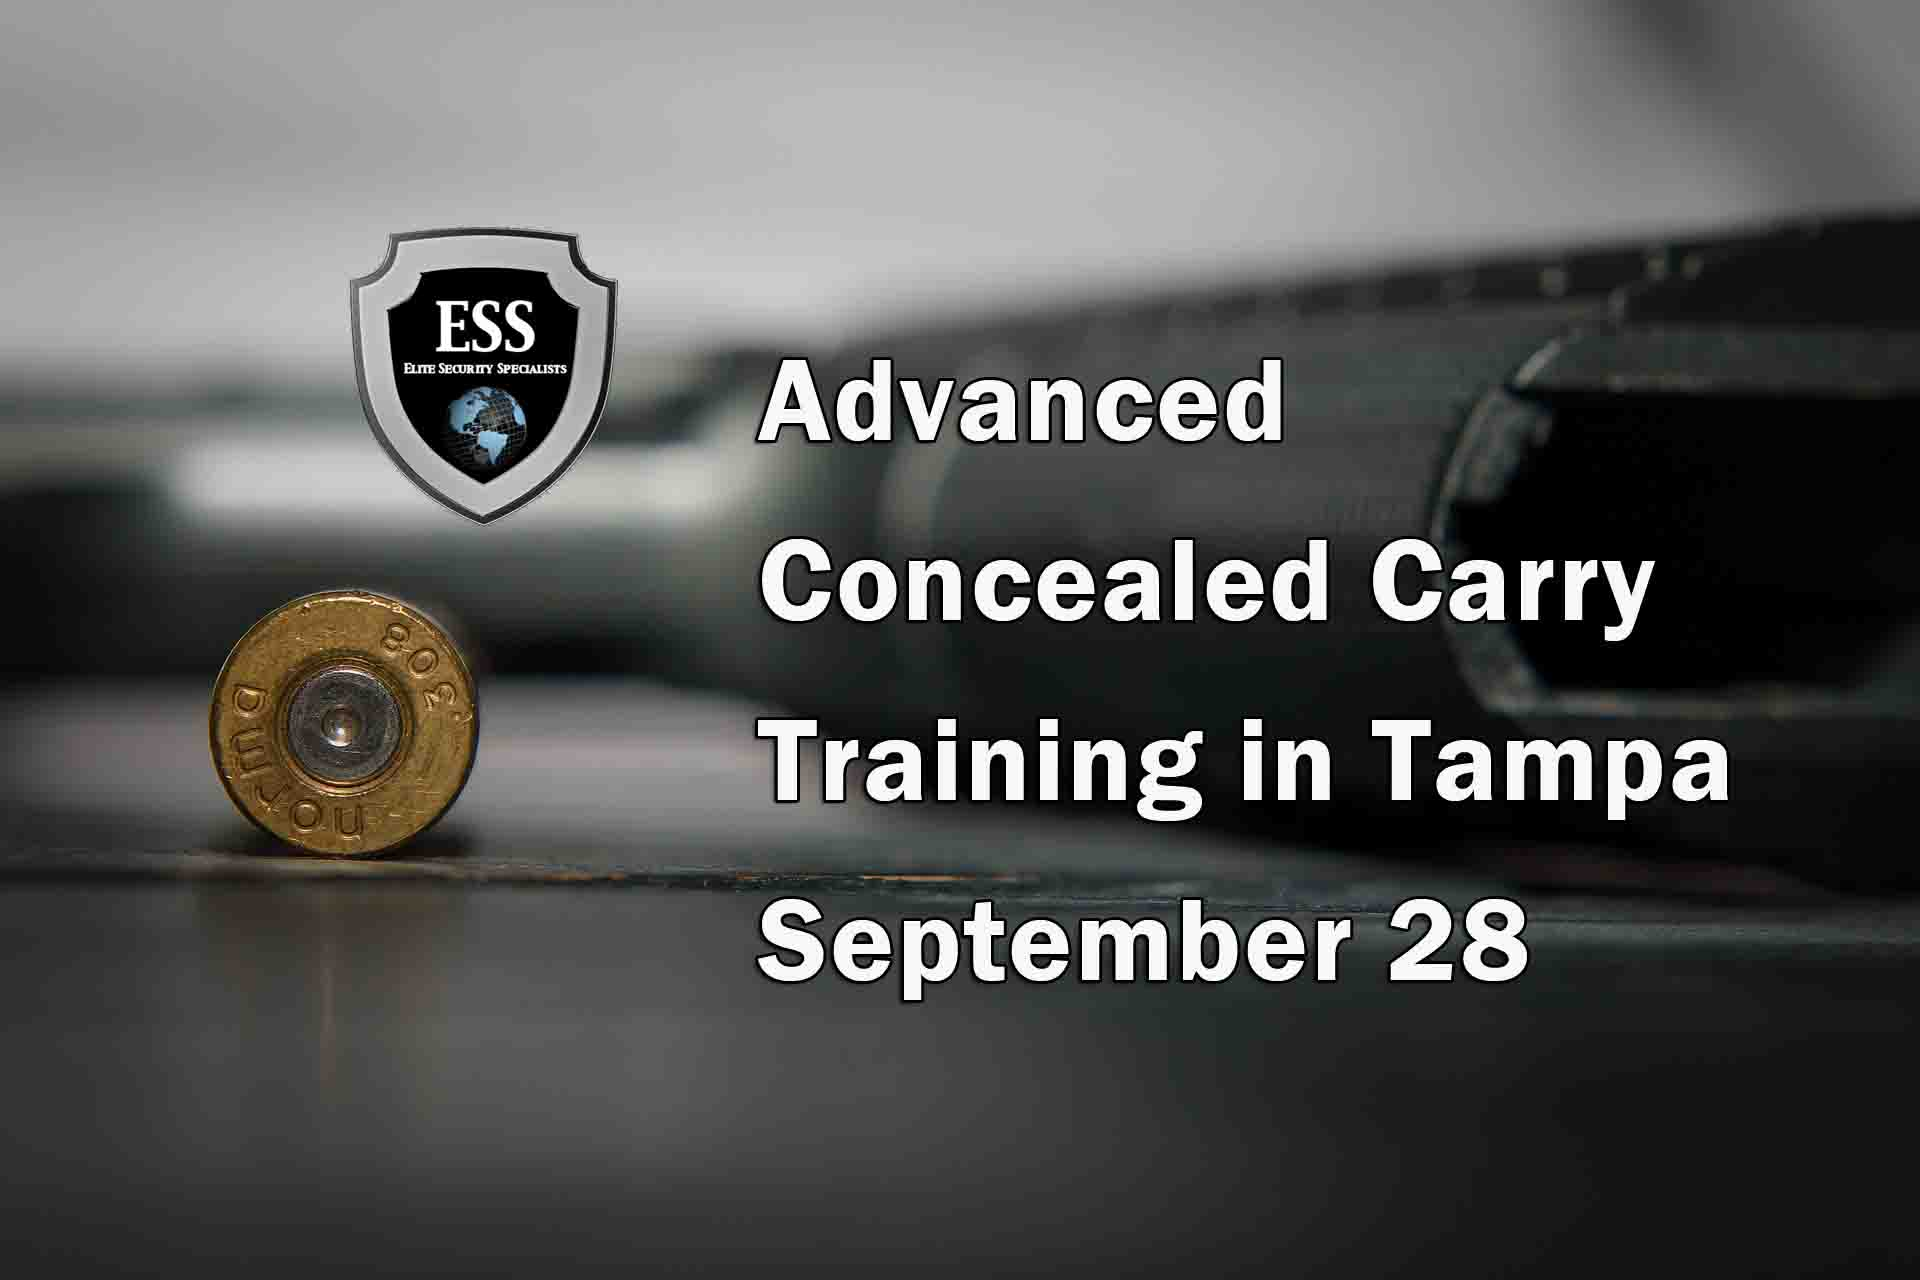 Advanced Concealed Carry Course in Tampa